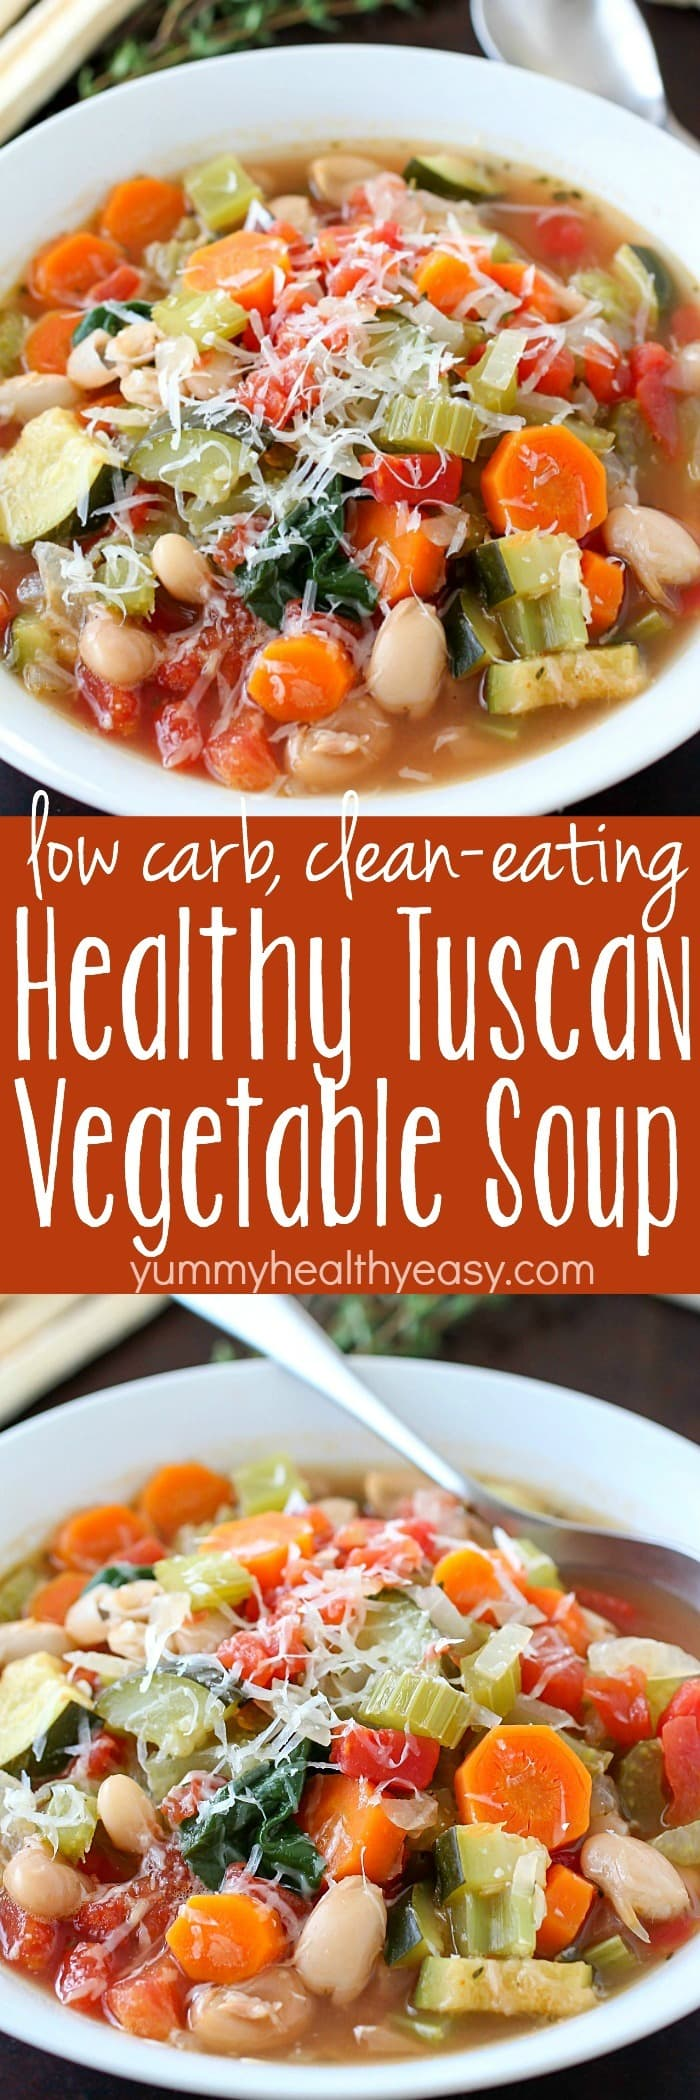 You won't believe the flavor in this easy-to-make Tuscan Vegetable Soup ! Who knew healthy could taste so good?! This healthy soup is gluten-free, vegetarian, clean-eating and low carb. The best part? Is it SO GOOD! via @jennikolaus